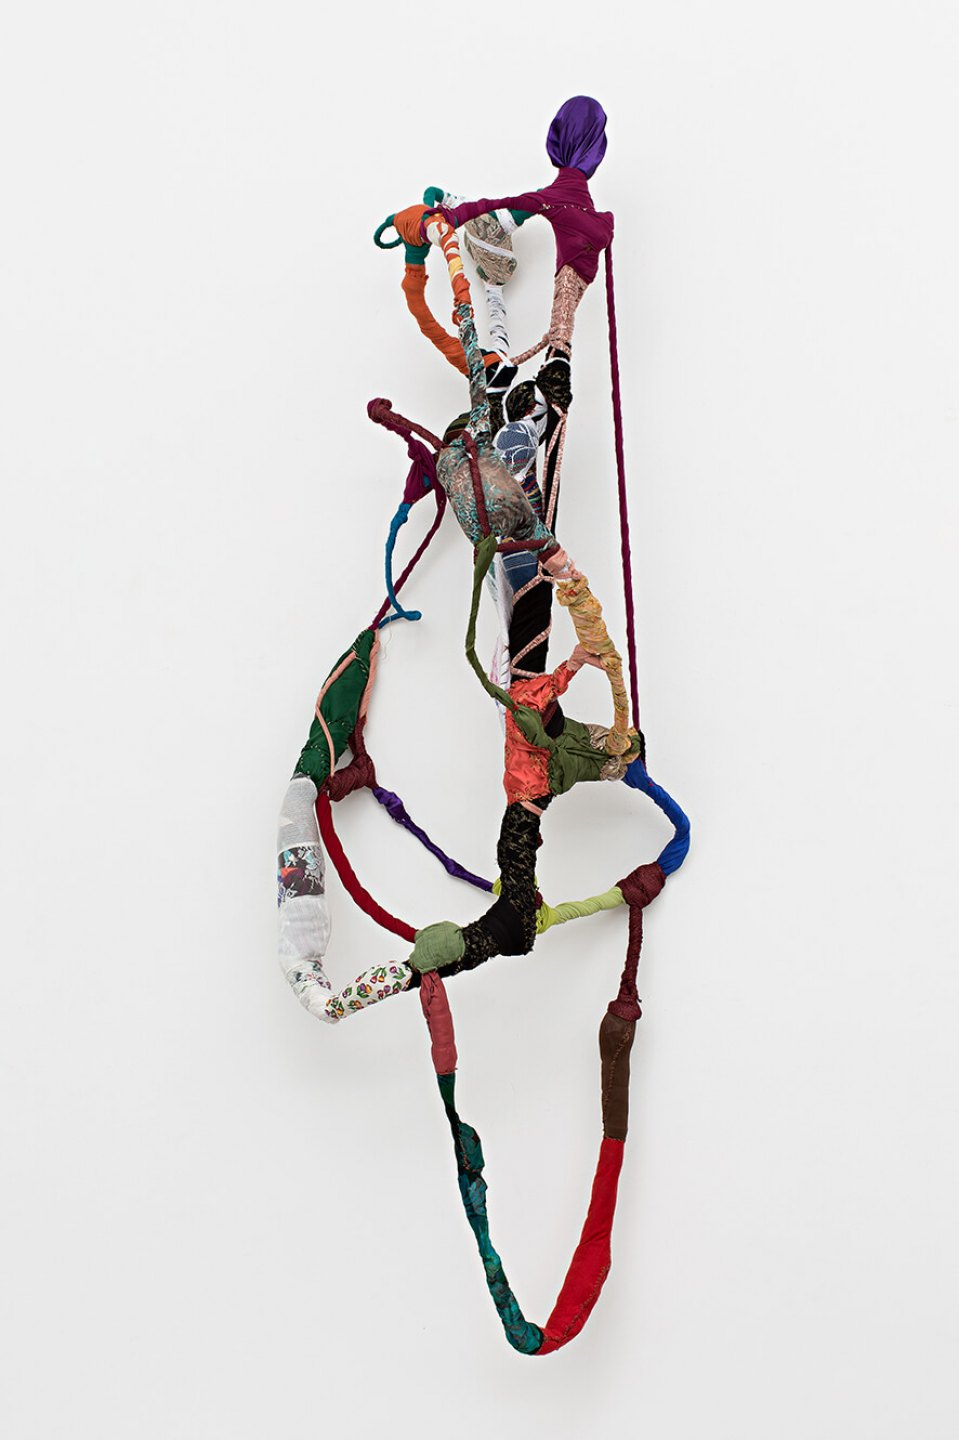 Sonia Gomes,<em>untitled, from Torção series</em>,2013, stitching, moorings, different fabrics and laces on wire, 180 × 65 × 60 cm - Mendes Wood DM